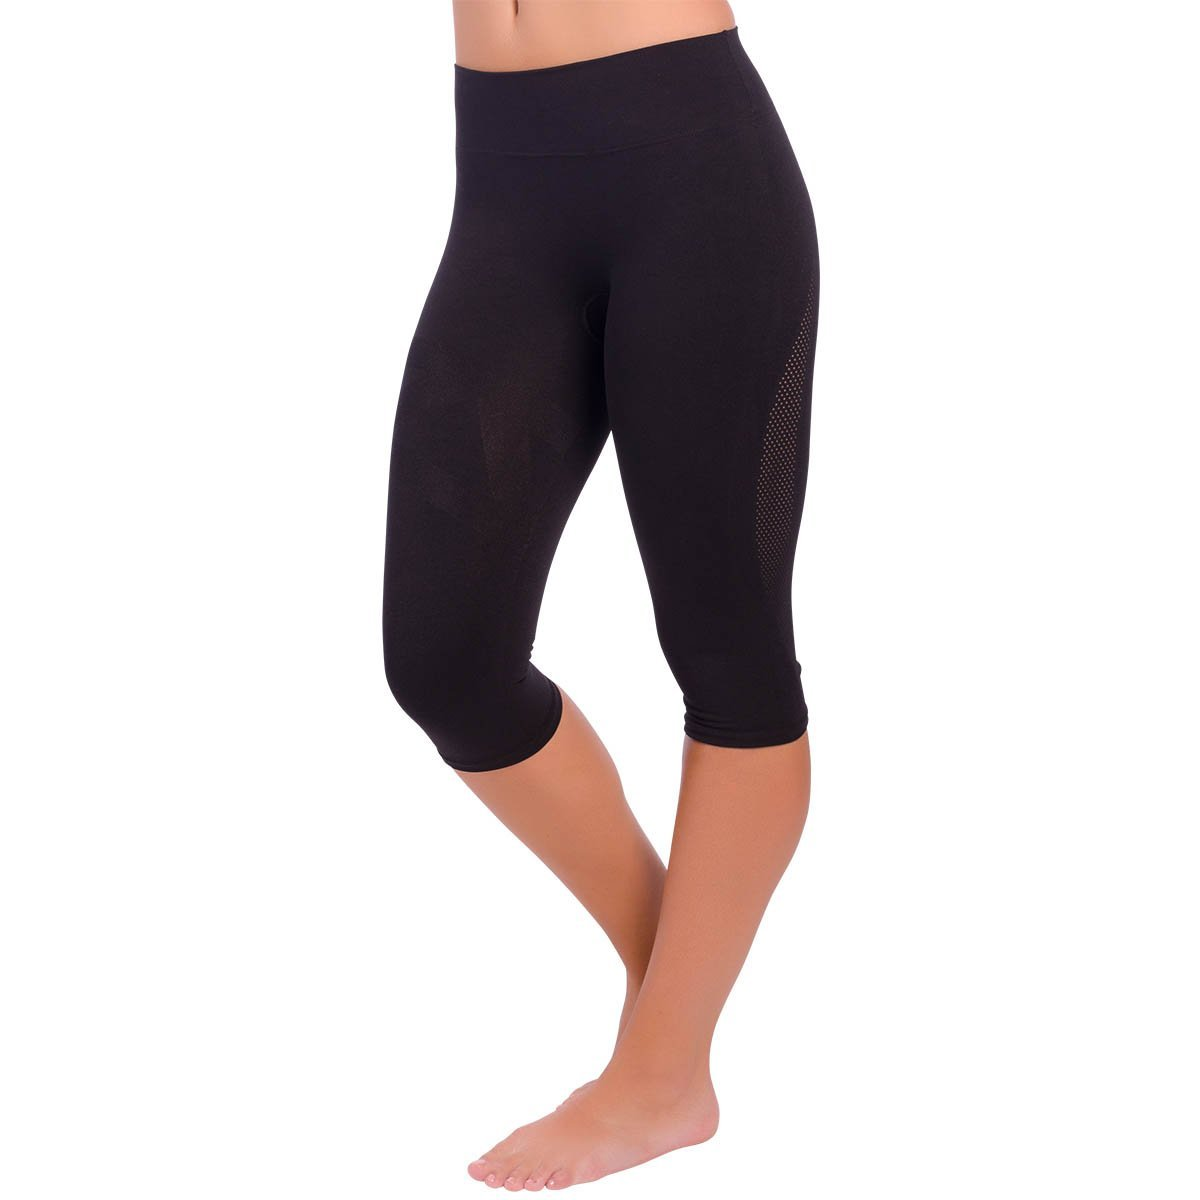 a645e8e85ae99 Zensah High Waisted Capris - Women's Compression 3/4 Tights, High Rise Compression  Pants